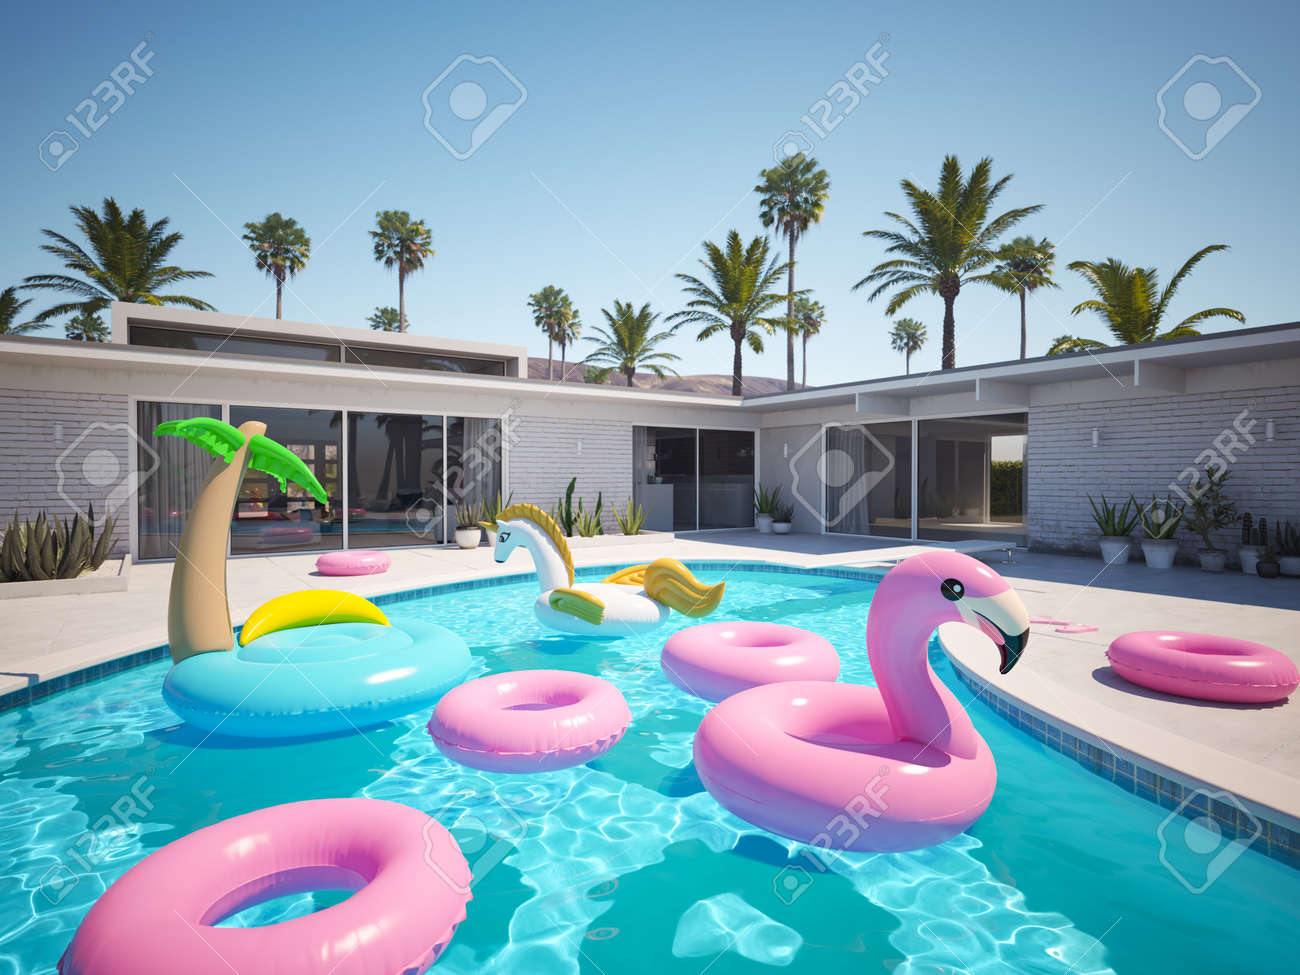 3D rendering. a lot of different floats in a pool - 101551823